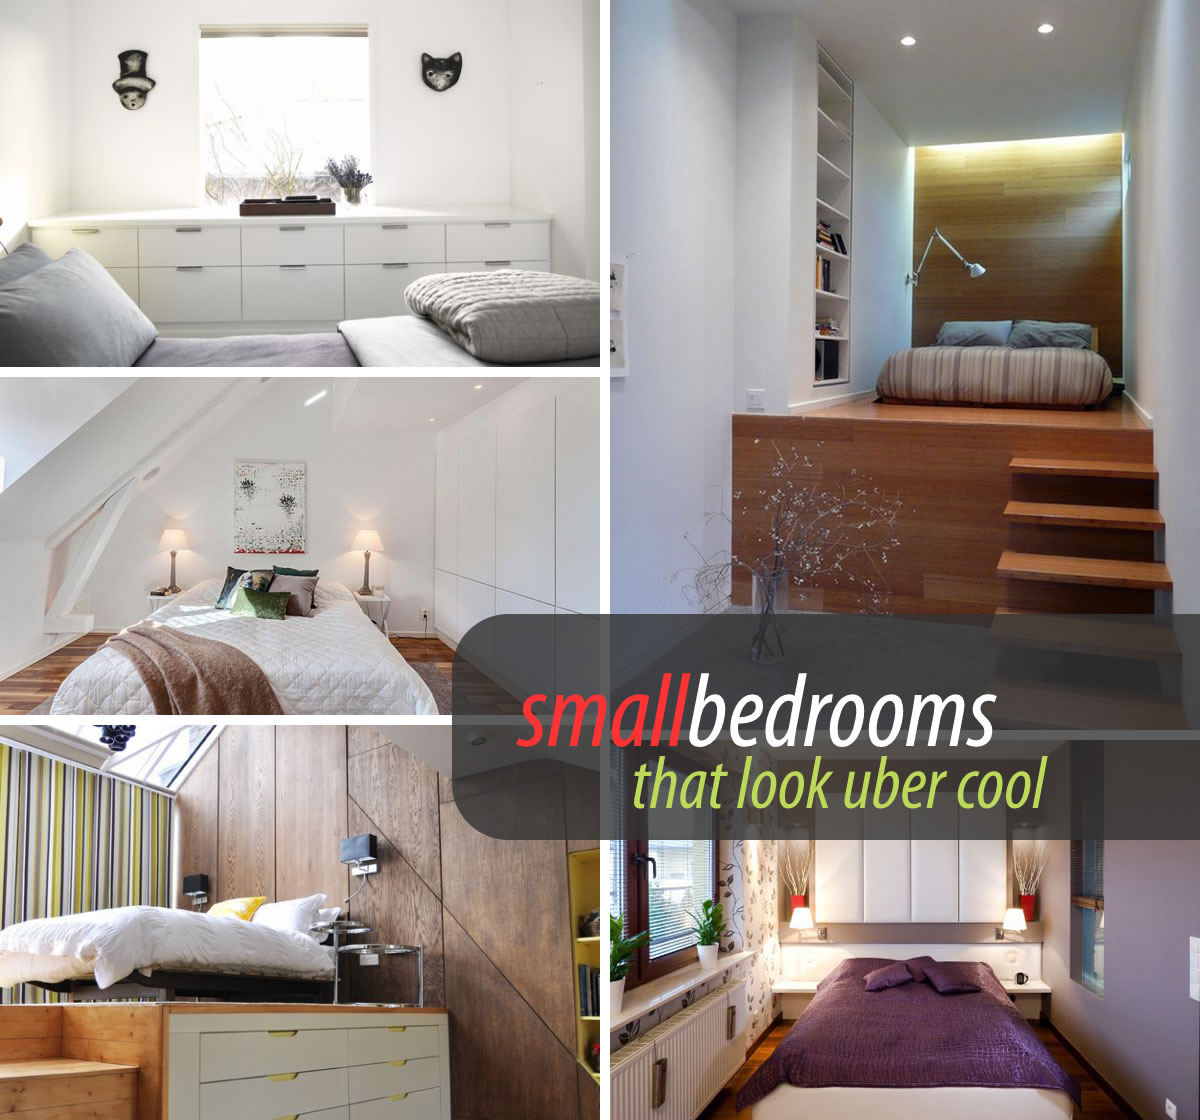 45 small bedroom design ideas and inspiration for Very small bedroom solutions